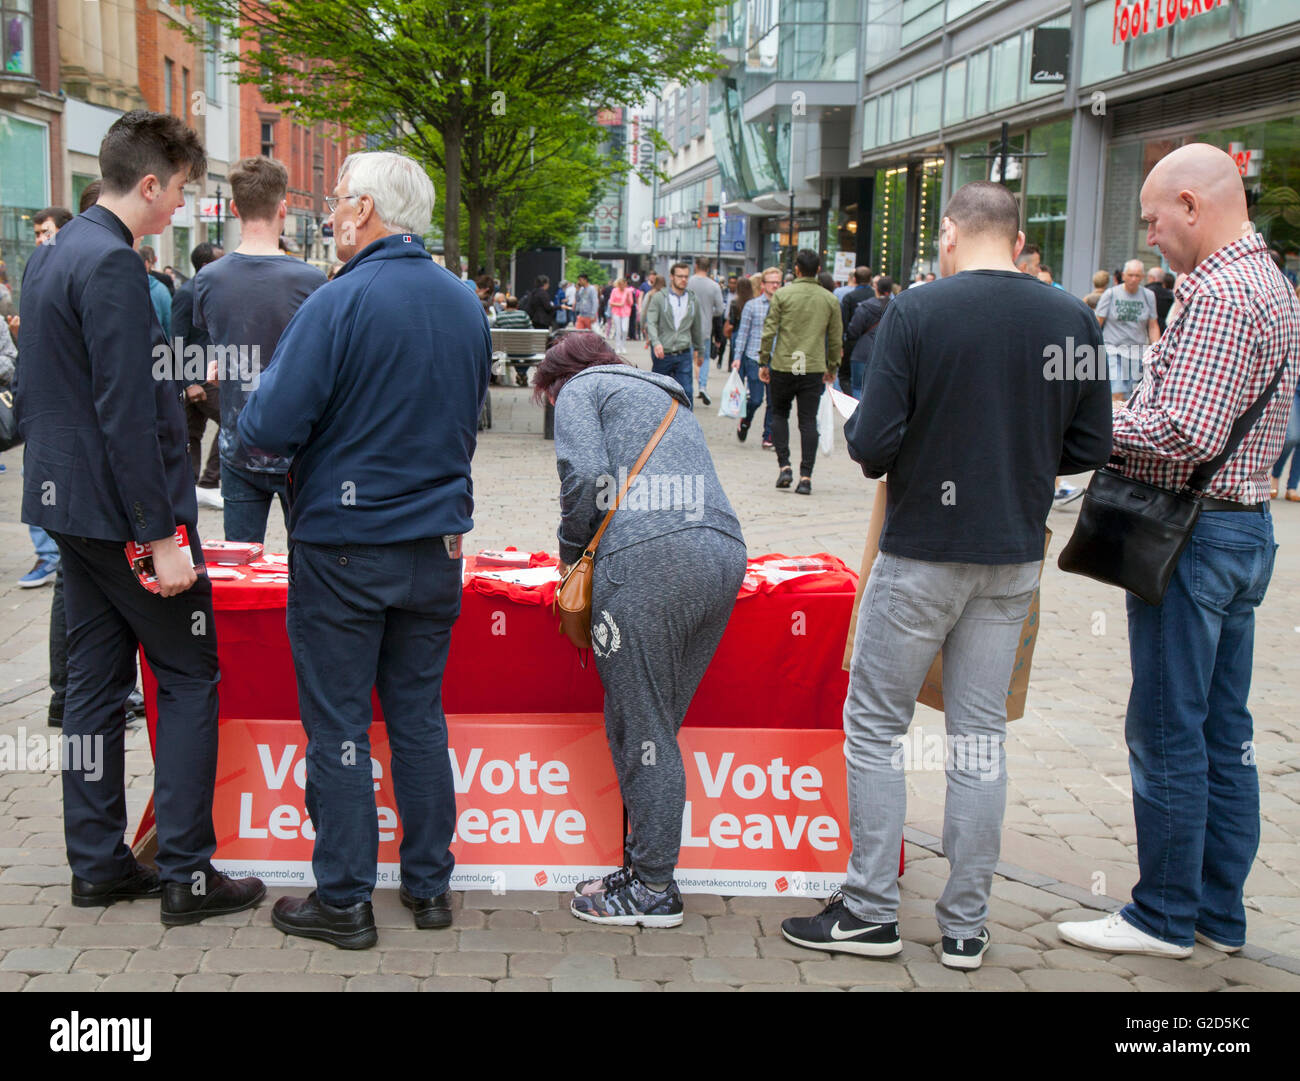 Greater Manchester, UK: 28th May, 2016. In the last few weeks before the European Referendum Vote Leave Campaigners Stock Photo